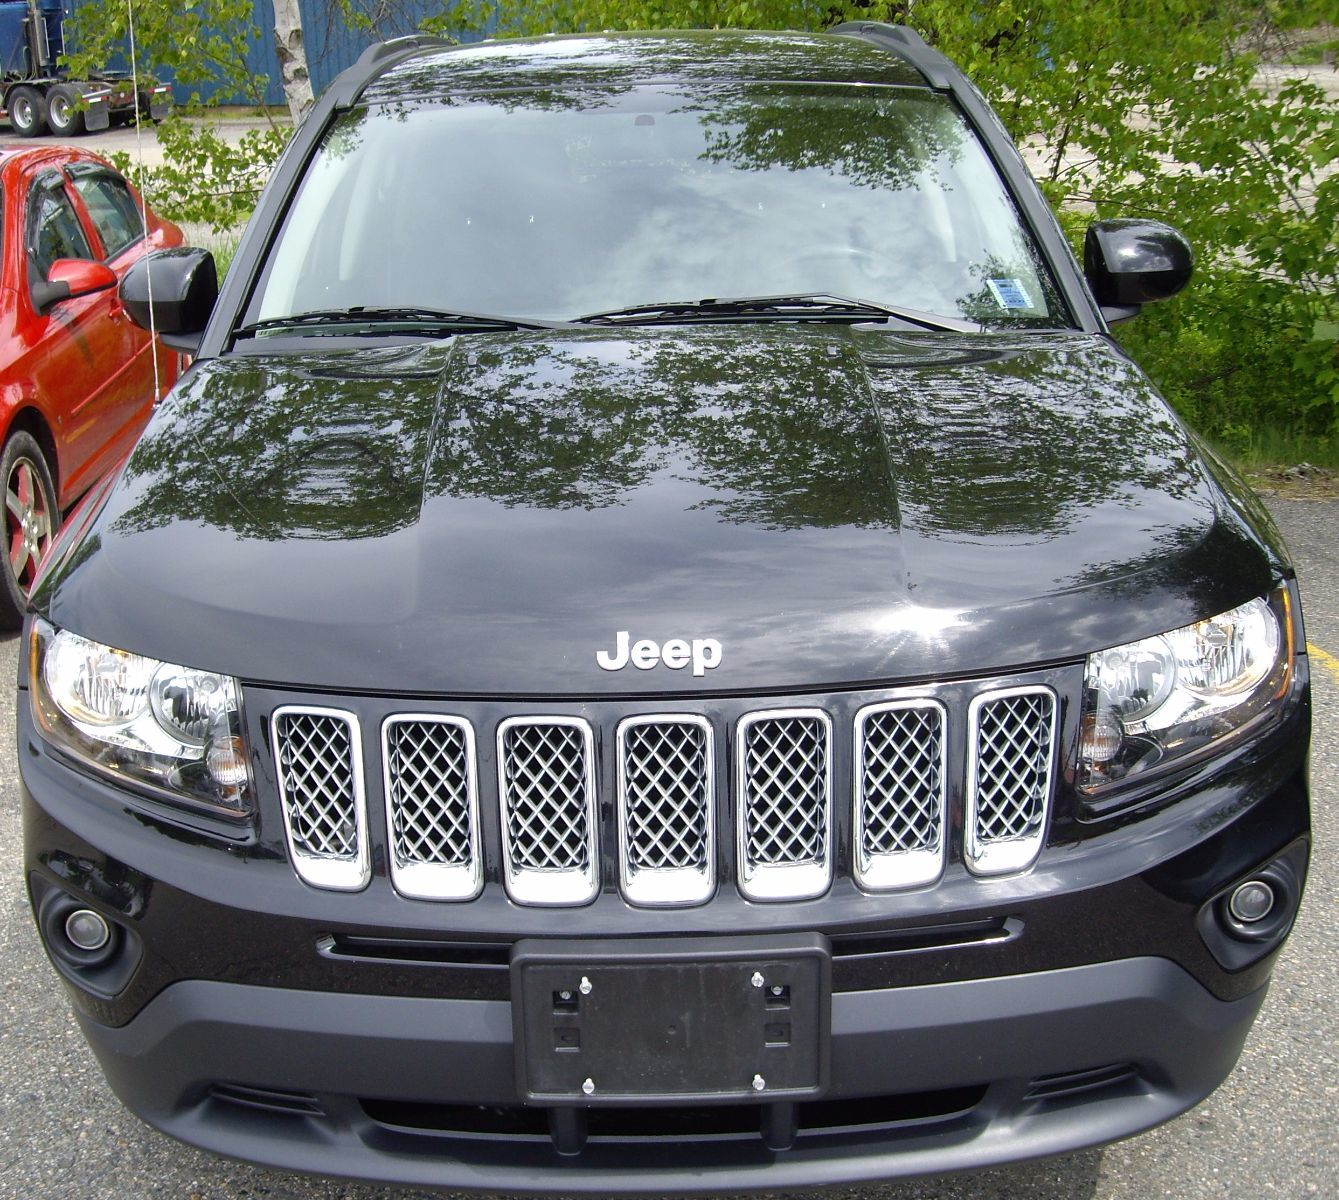 Jeep Compass Used Car: Used 2015 Jeep Compass In New Germany